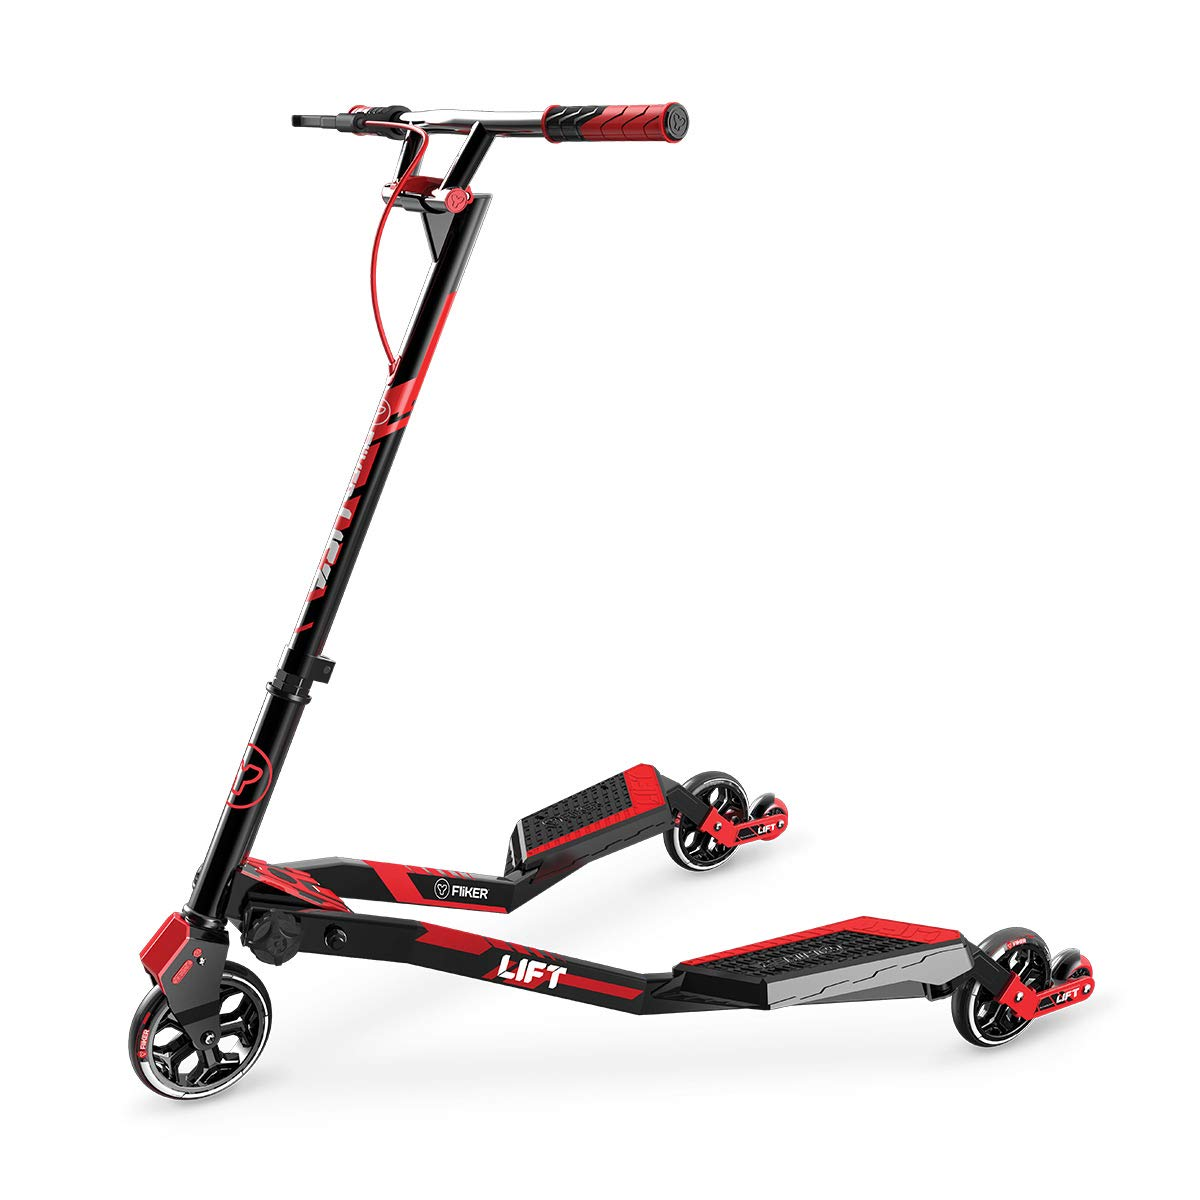 Yvolution Fliker Lift Scooter Size